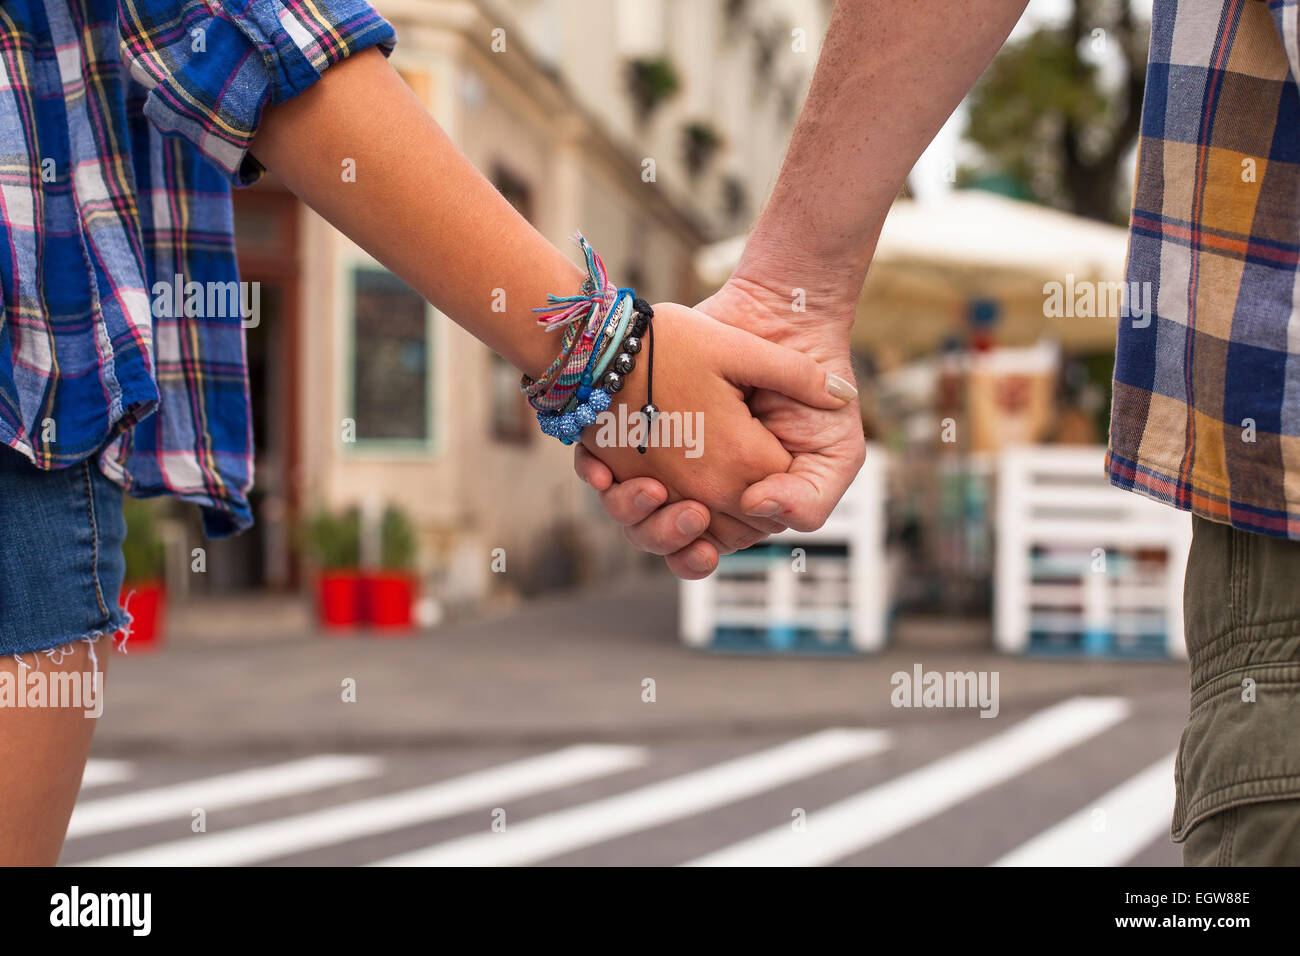 Close-up of the holding hands of a young couple in a summer town. Stock Photo